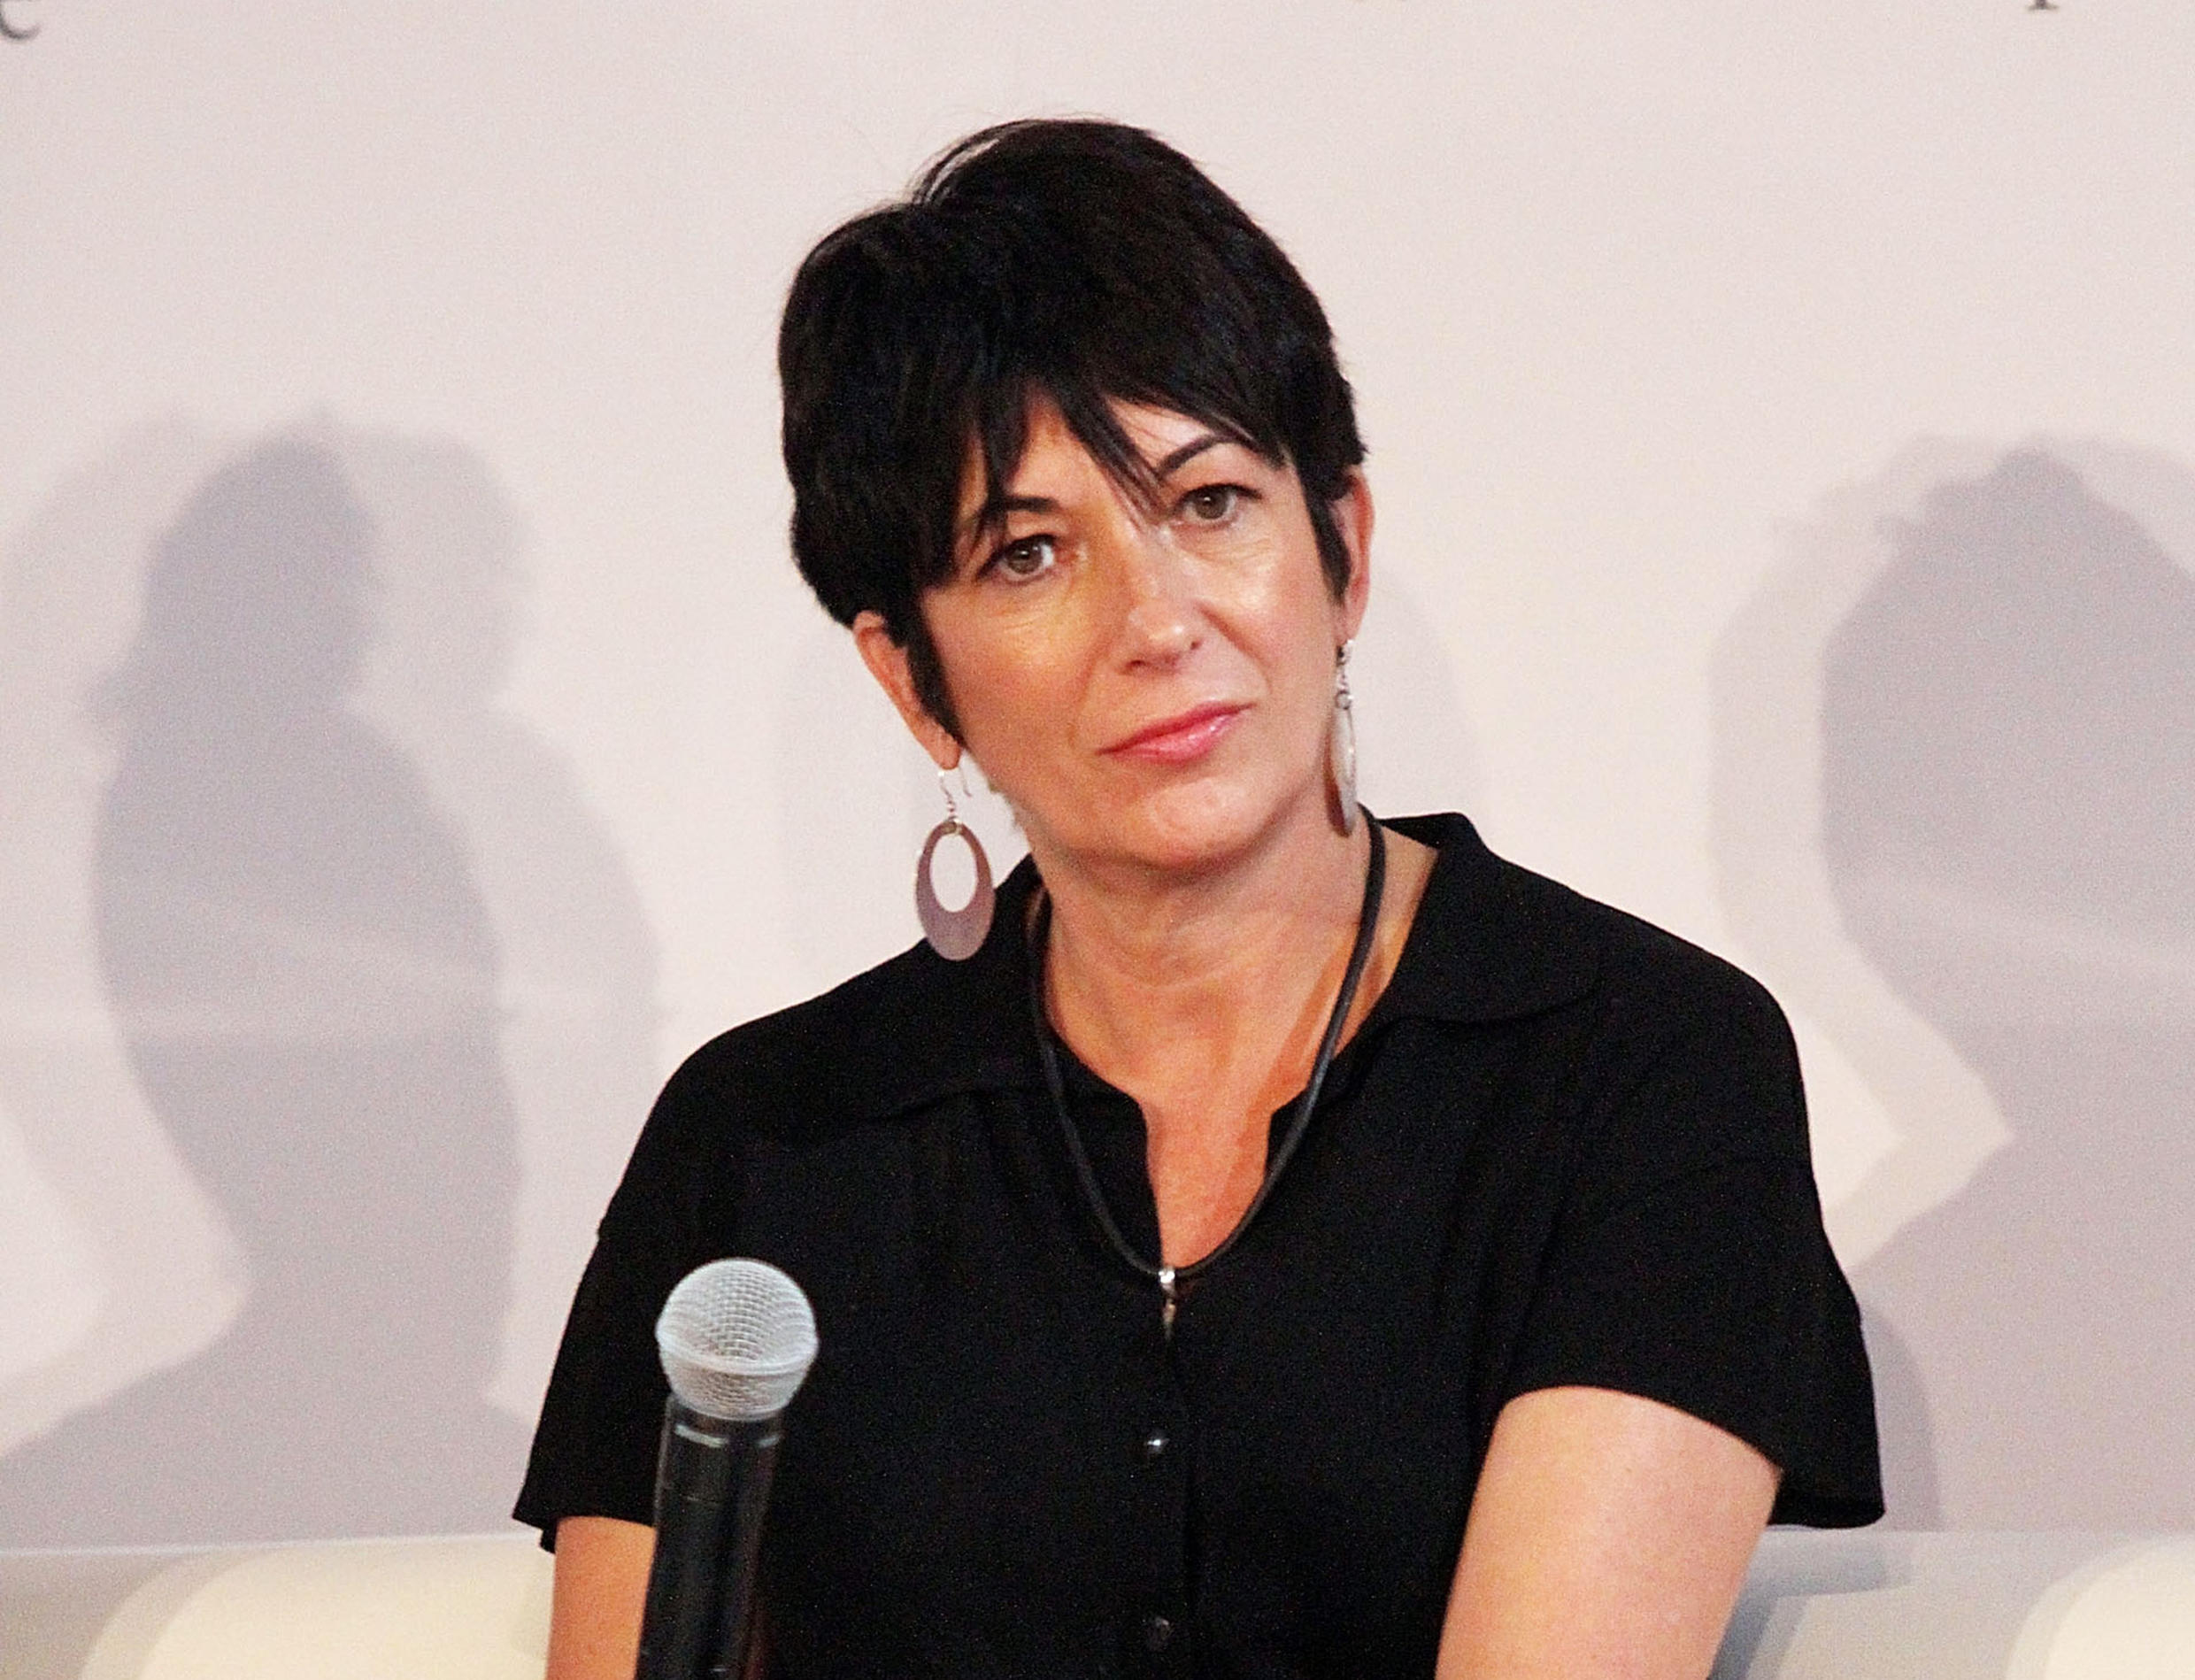 Ghislaine Maxwell at a symposium in New York City, on September 20, 2013.